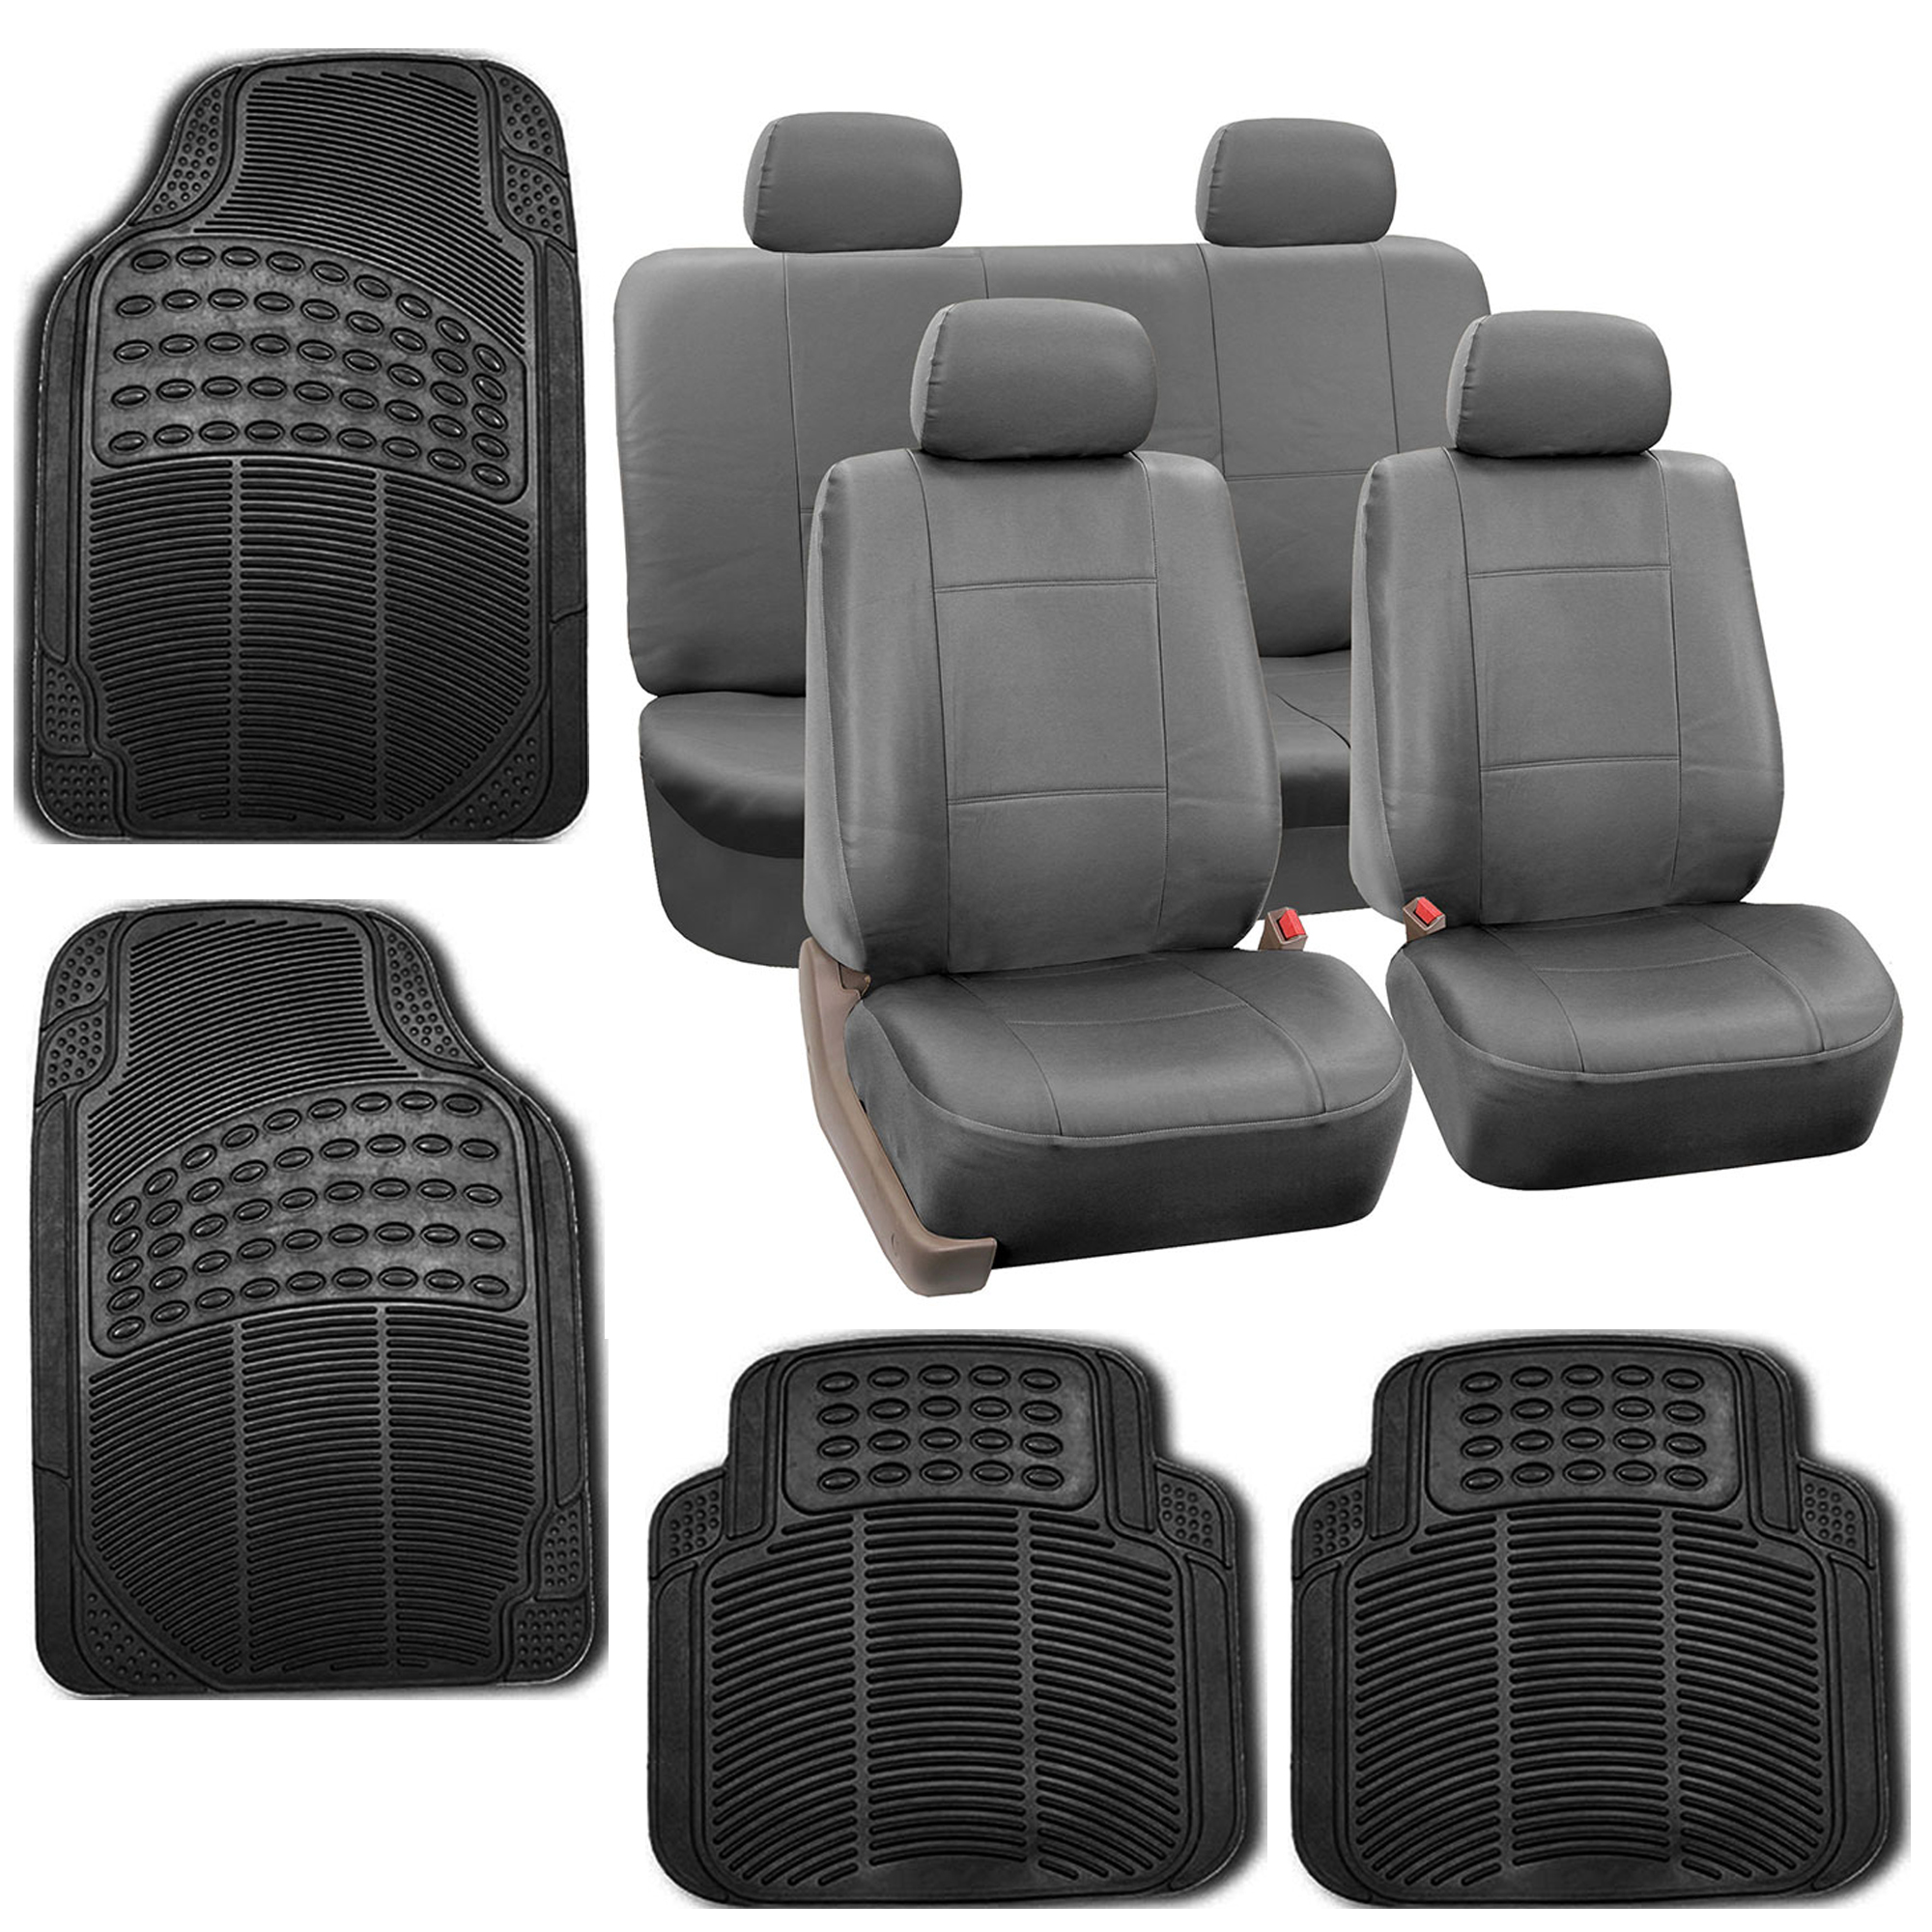 Rubber floor mats discovery 4 - Rubber Floor Mats Discovery 4 32